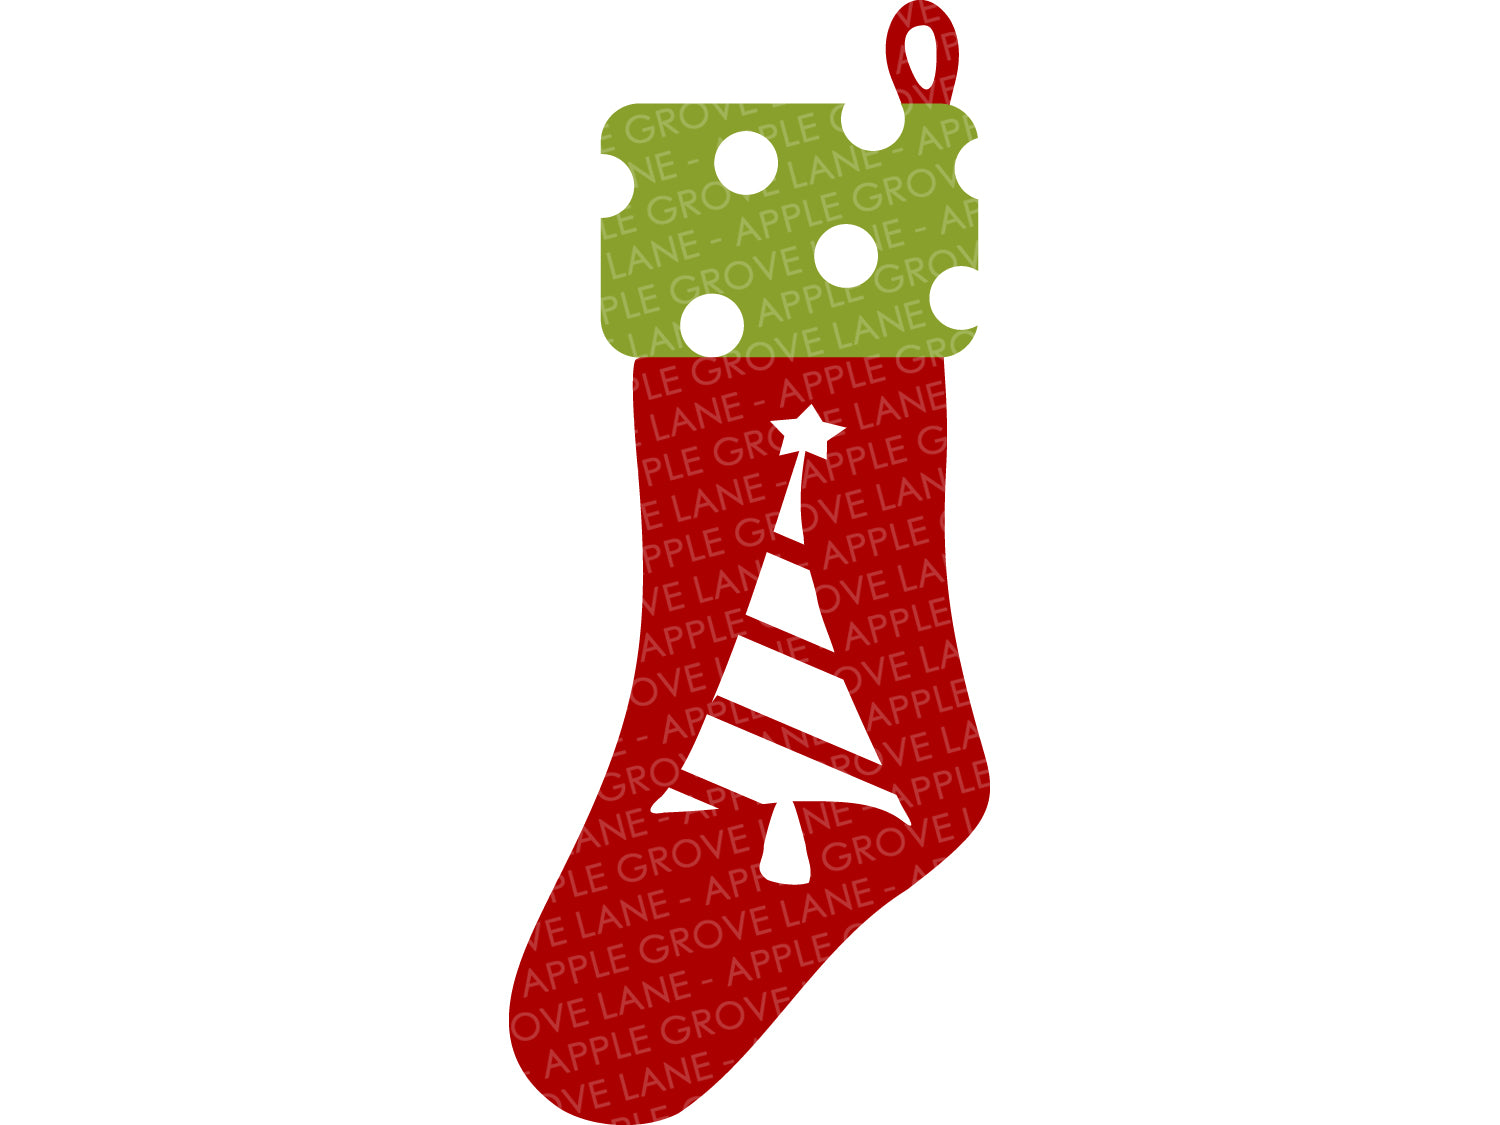 Christmas Stocking Svg - Stocking Svg - Christmas Svg - Christmas Tree Svg - Christmas Sock Svg - Stocking Clip Art - Svg Eps Dxf Png